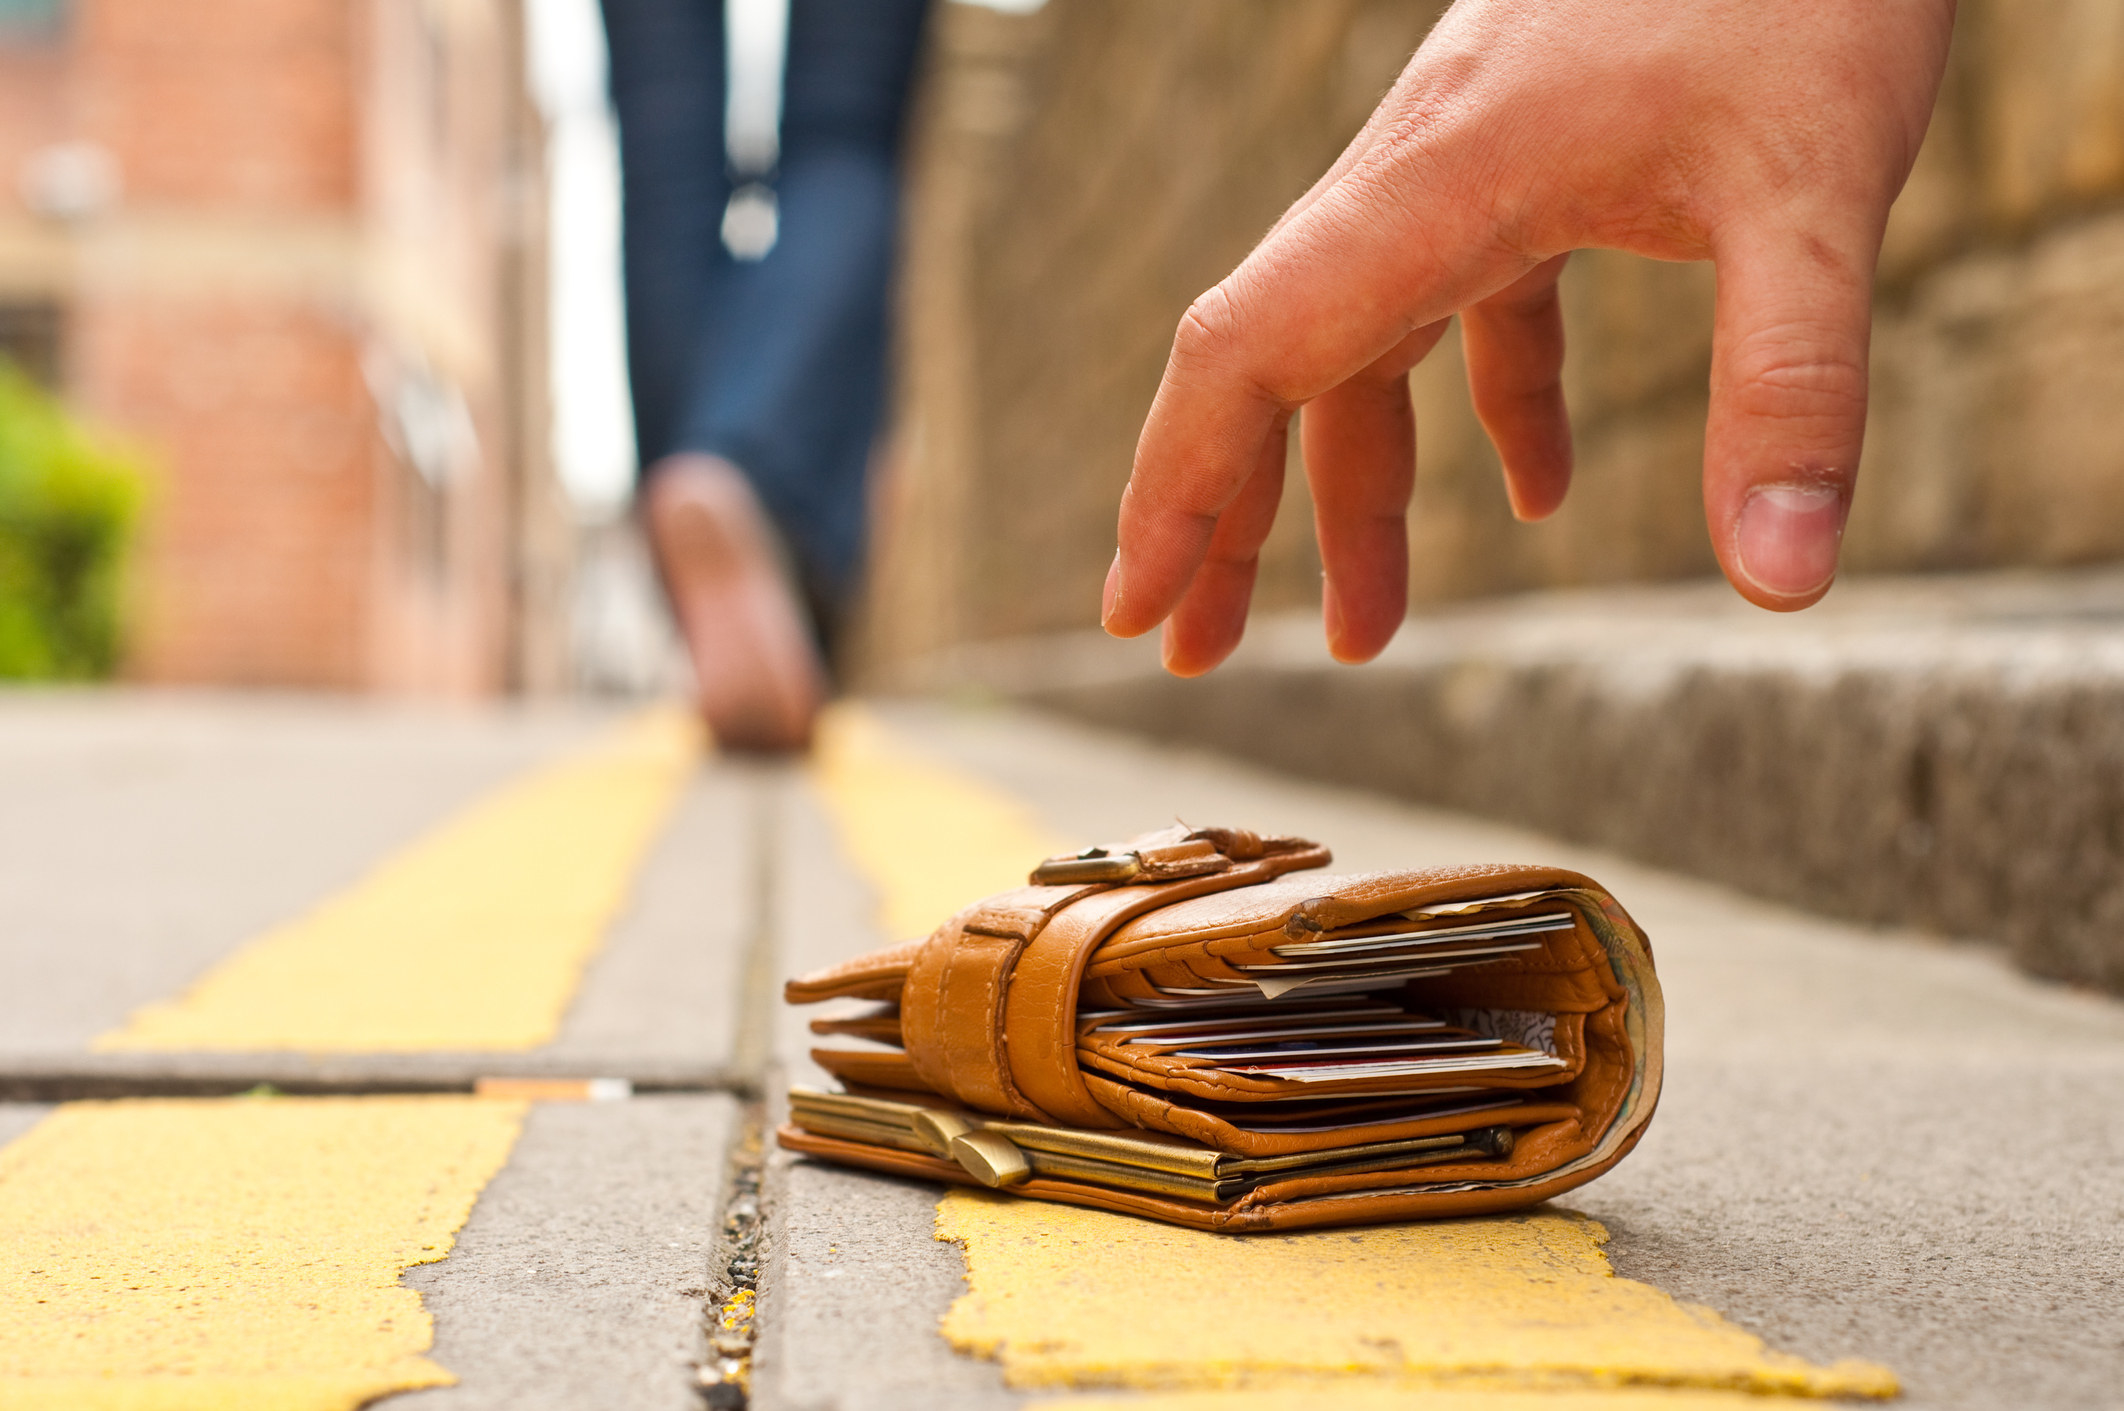 Thief picking up a lost wallet off the street